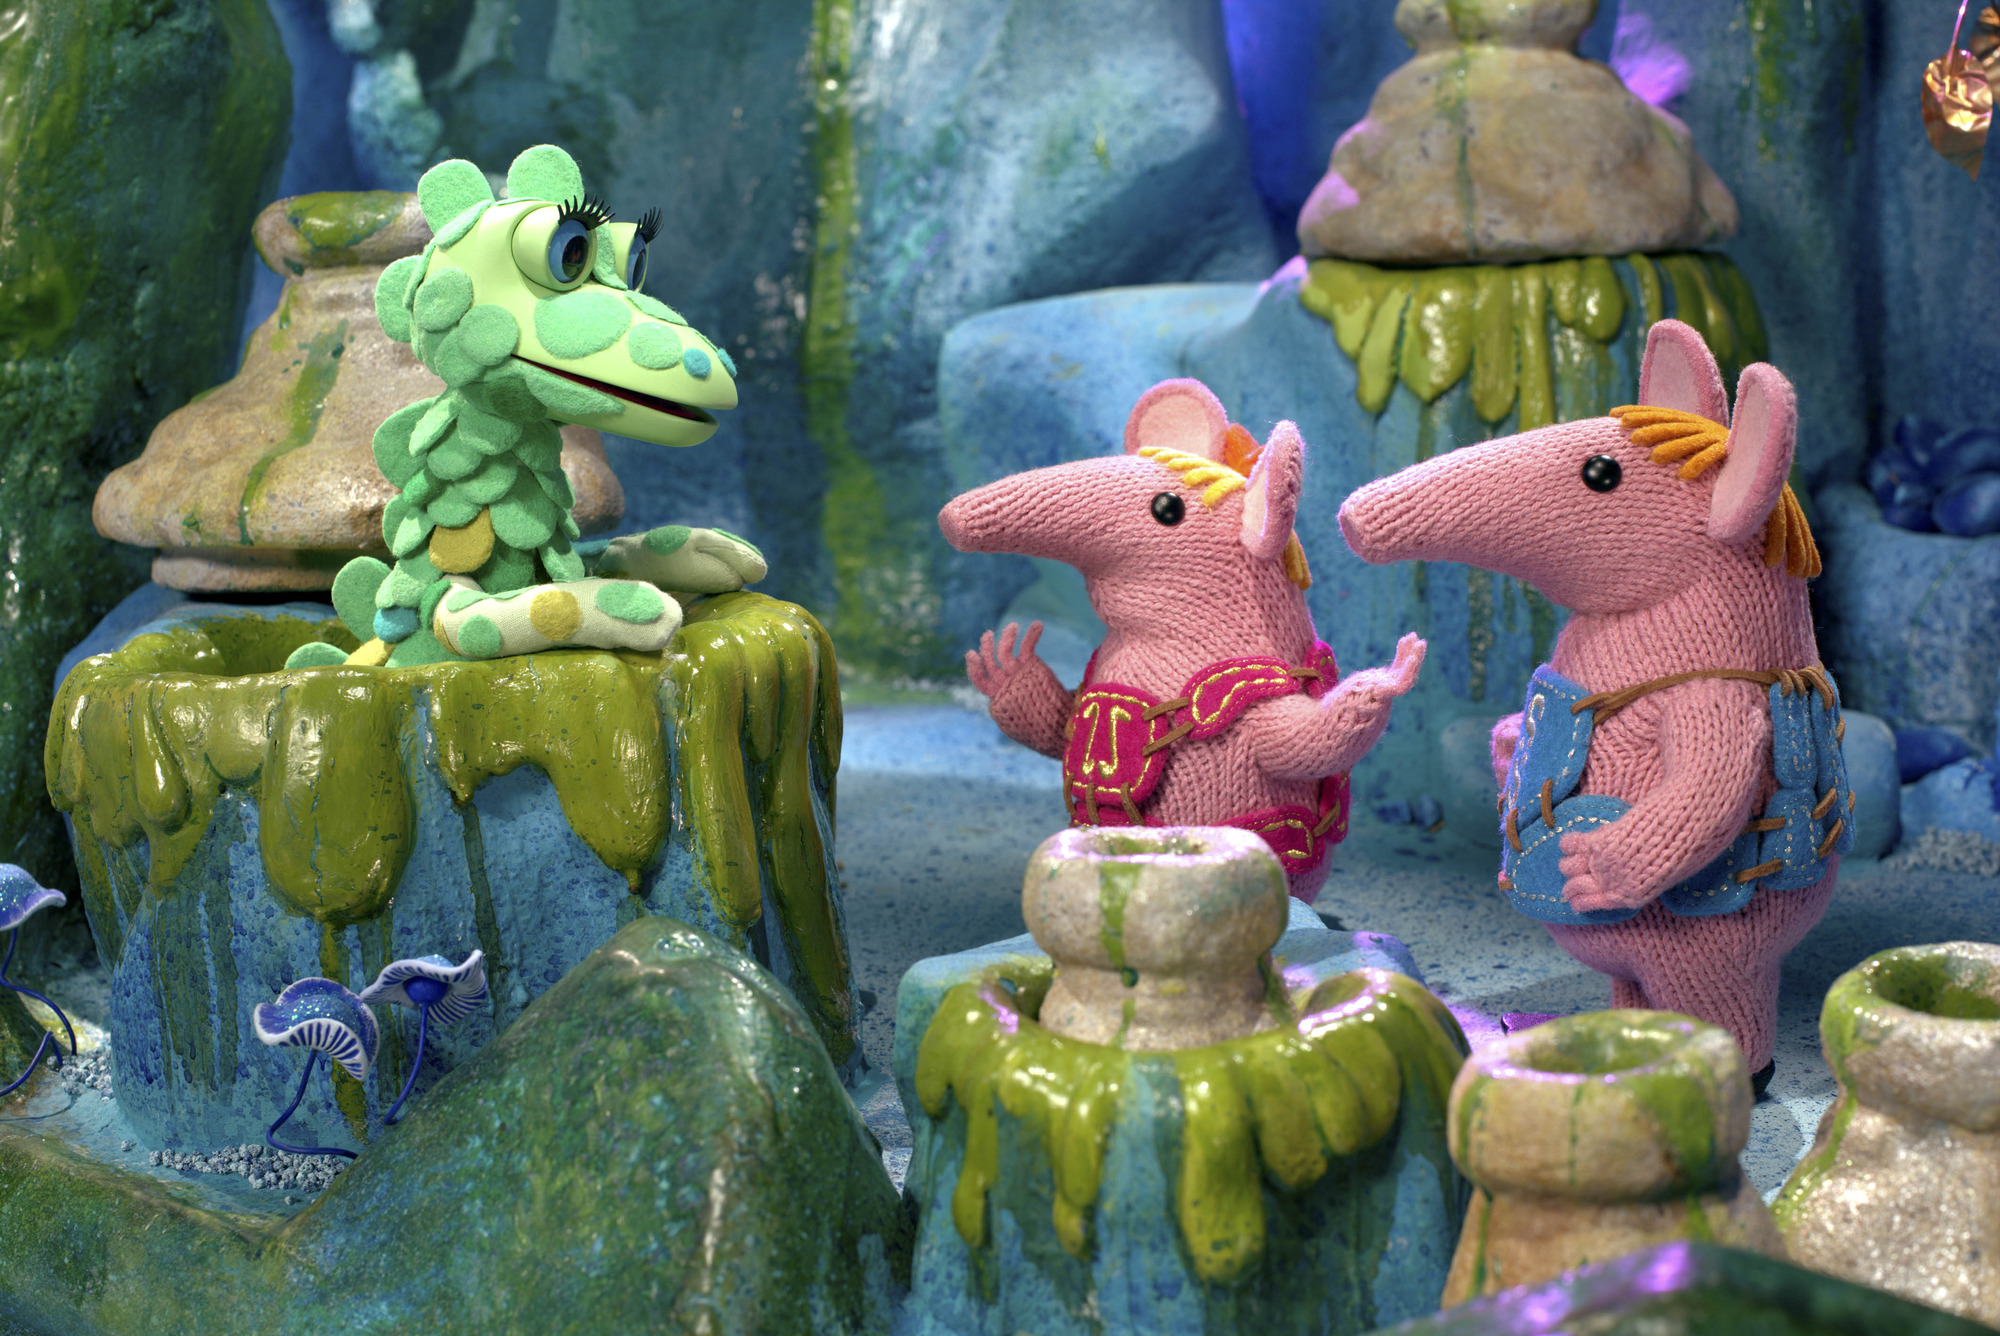 Tiny and Small  visit the Soup Wells to ask the Soup Dragon if she has seen the notes.  - (C) Coolabi, Smallfilms and Peter Firmin - Photographer: Production